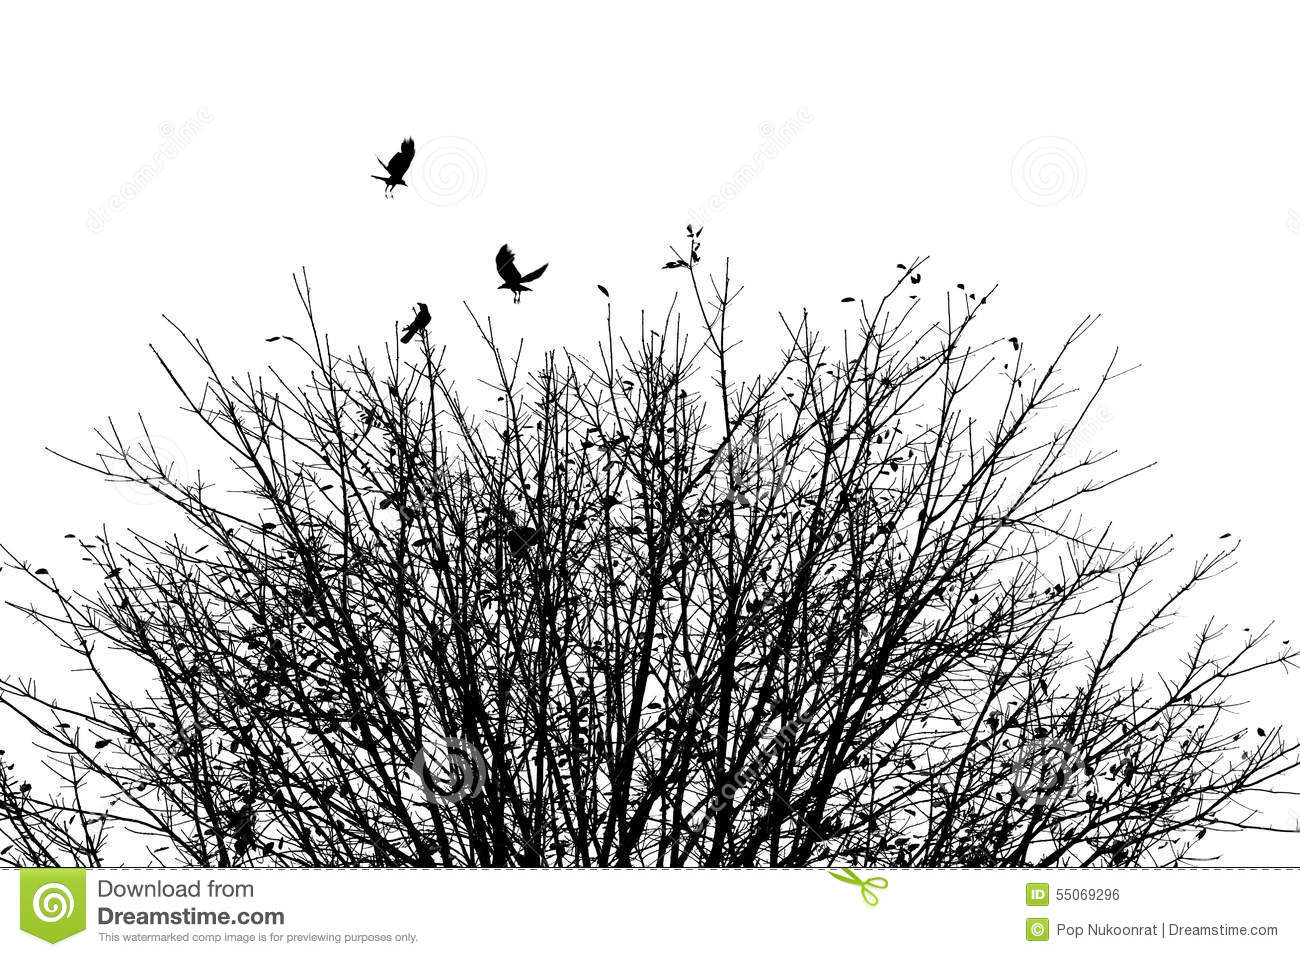 The Crow Your Autumn Of Tomorrow